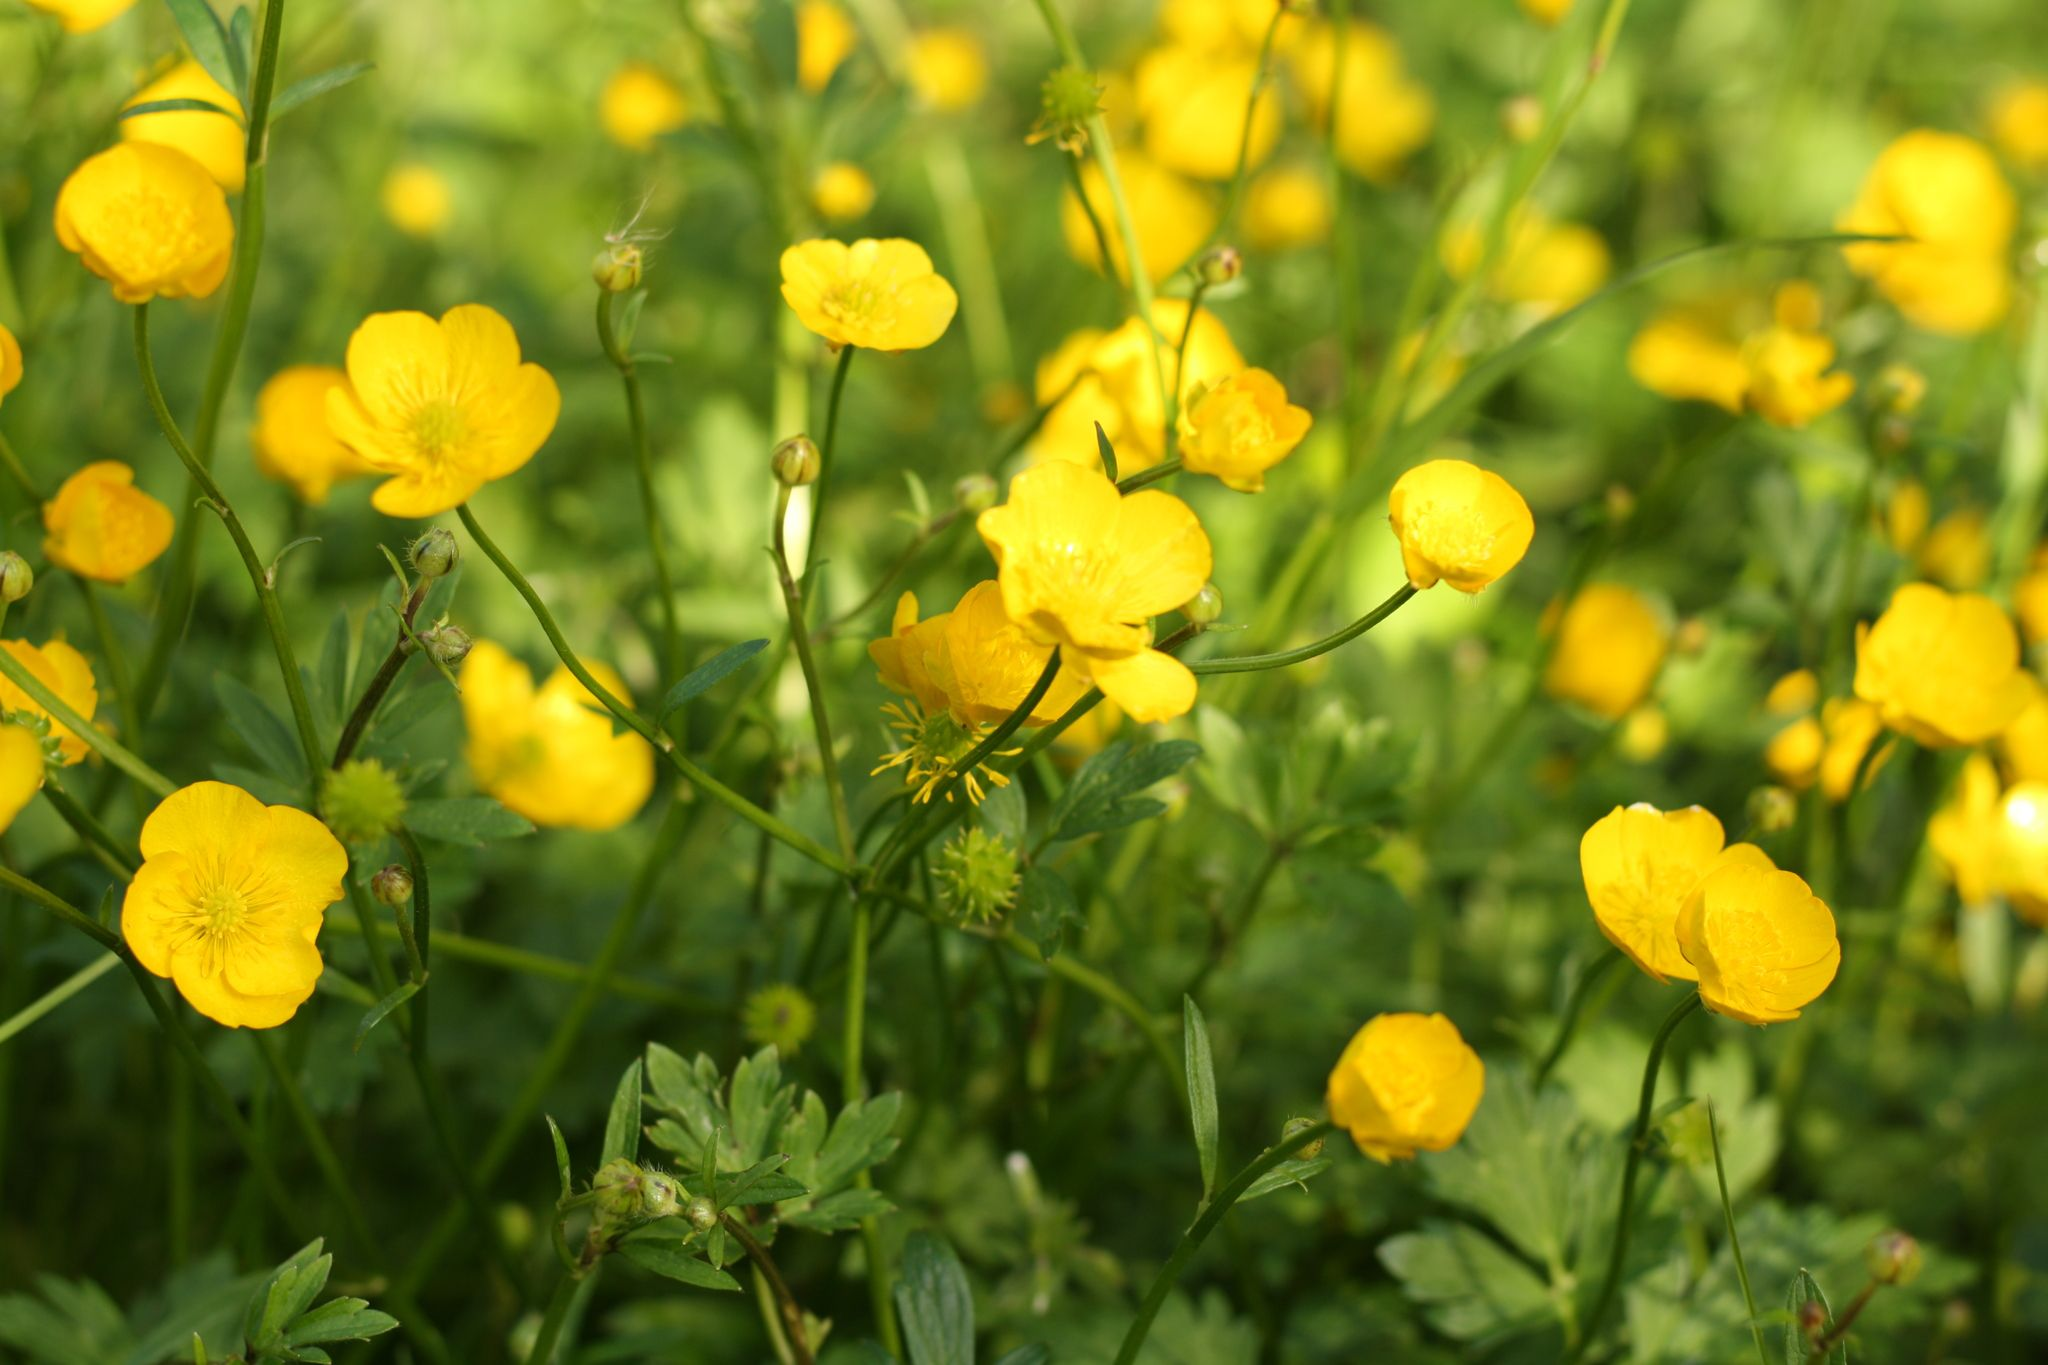 Meadow buttercup flowers are blooming in a field.